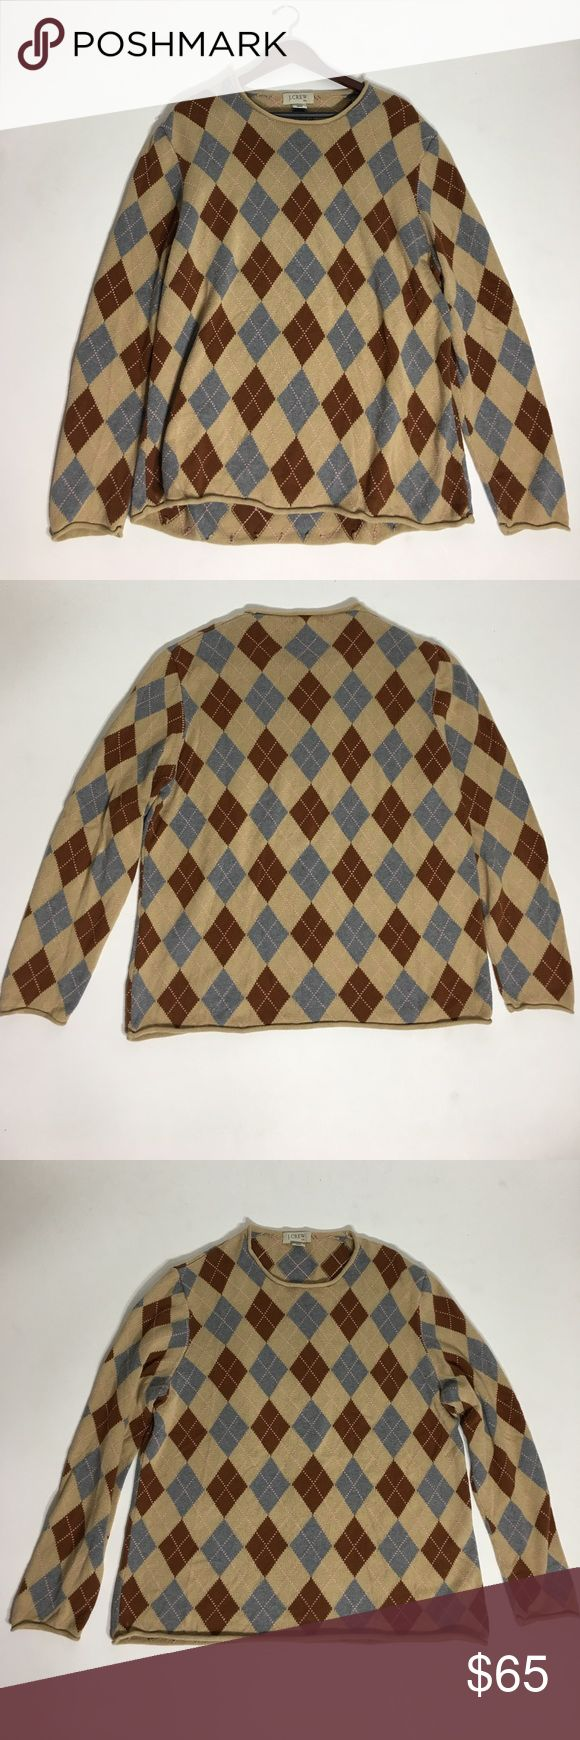 🥂HP🥂 J. Crew Argyle Men's Sweater - Size XXL 📌Price Firm - Will need a steam to get the curl out.  Please ask questions before purchasing.  Fair Condition.  See pictures for more information and description details.  Thank you for stopping by my closet.  Sparkles ✨ and Happy Poshing!29 J. Crew Sweaters Crewneck